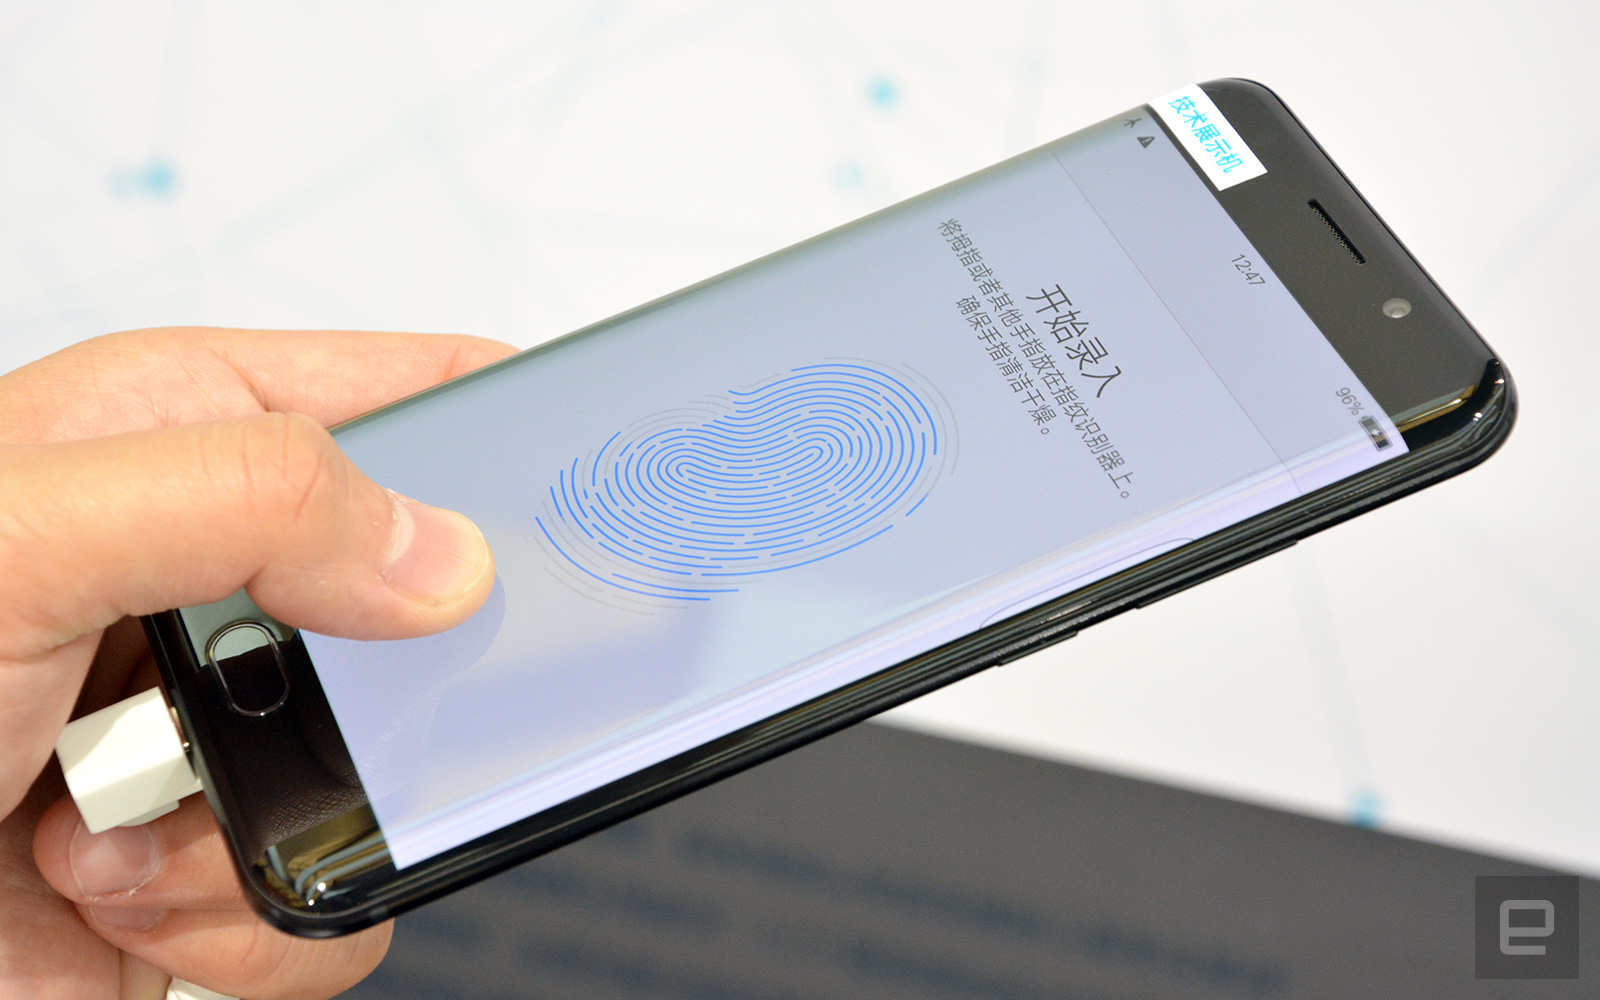 Vivo first with fingerprint sensor under mobile display Read more: http://www.tweaktown.com/news/58208/vivo-first-fingerprint-sensor-under-mobile-display/index.html?utm_source=dlvr.it&utm_medium=twitter&utm_campaign=tweaktown